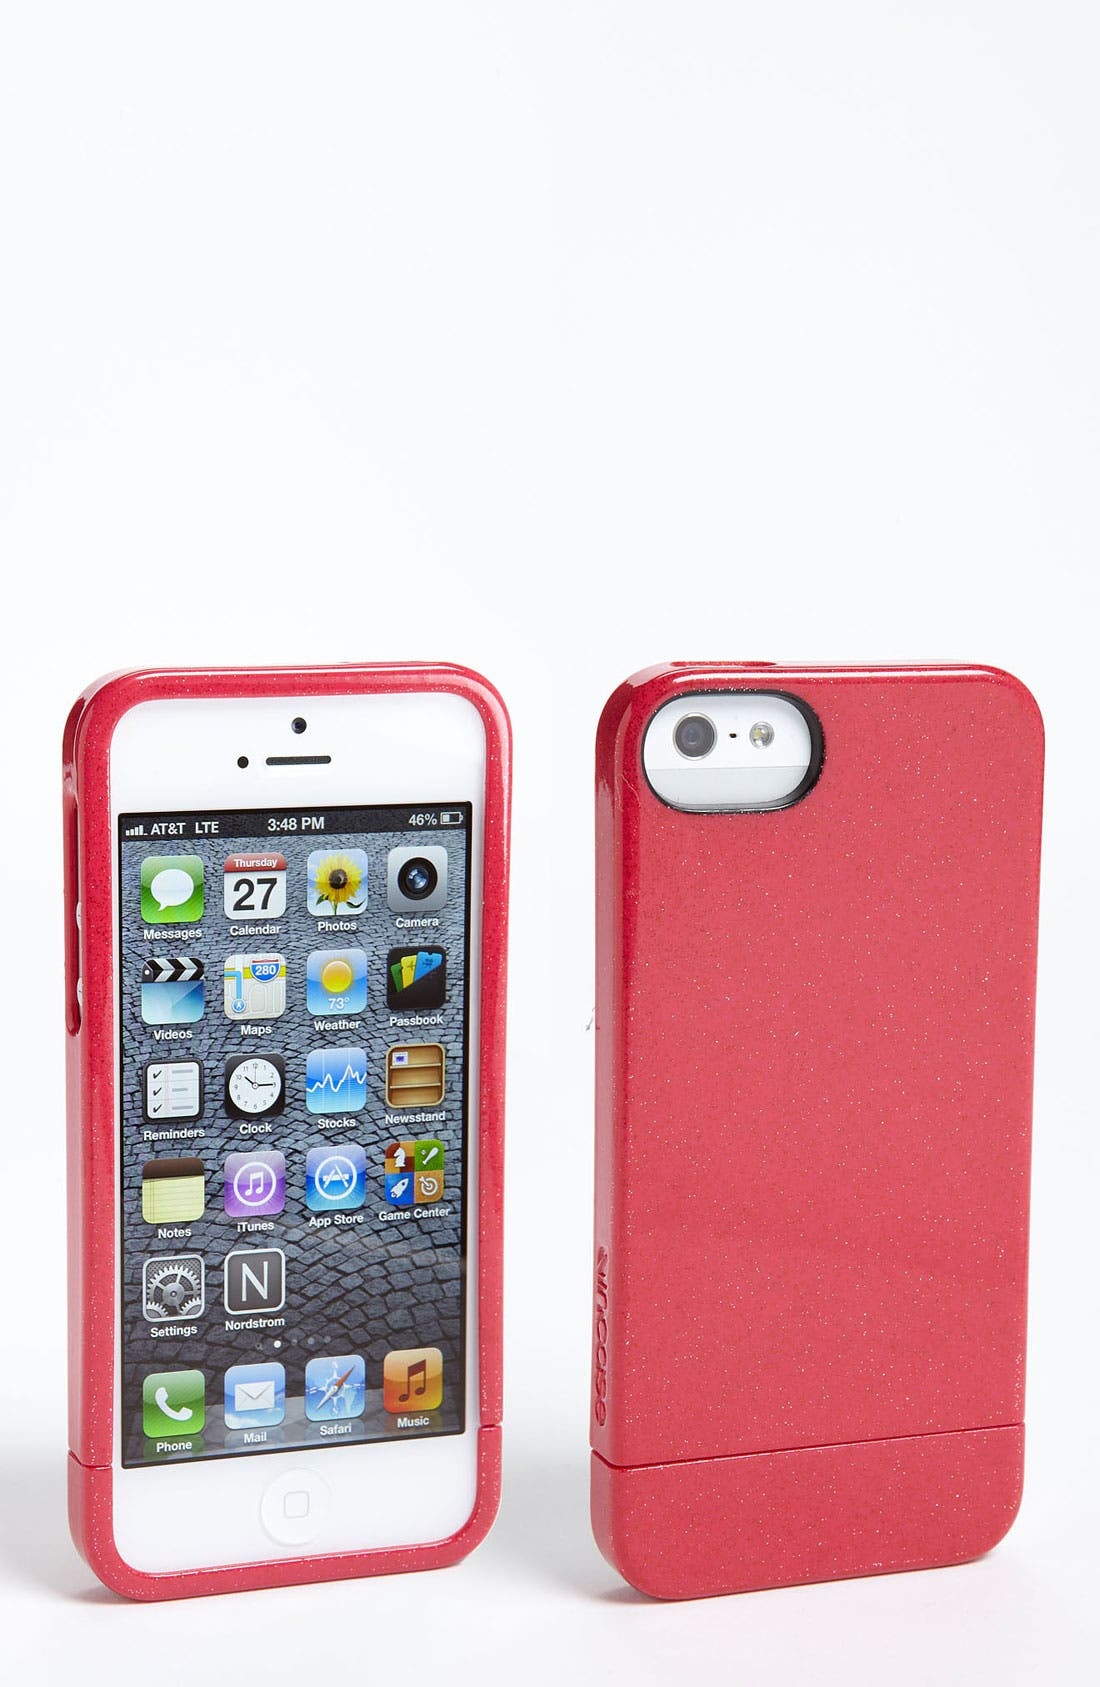 Alternate Image 1 Selected - Incase Designs 'Crystal' iPhone 5 Slider Case